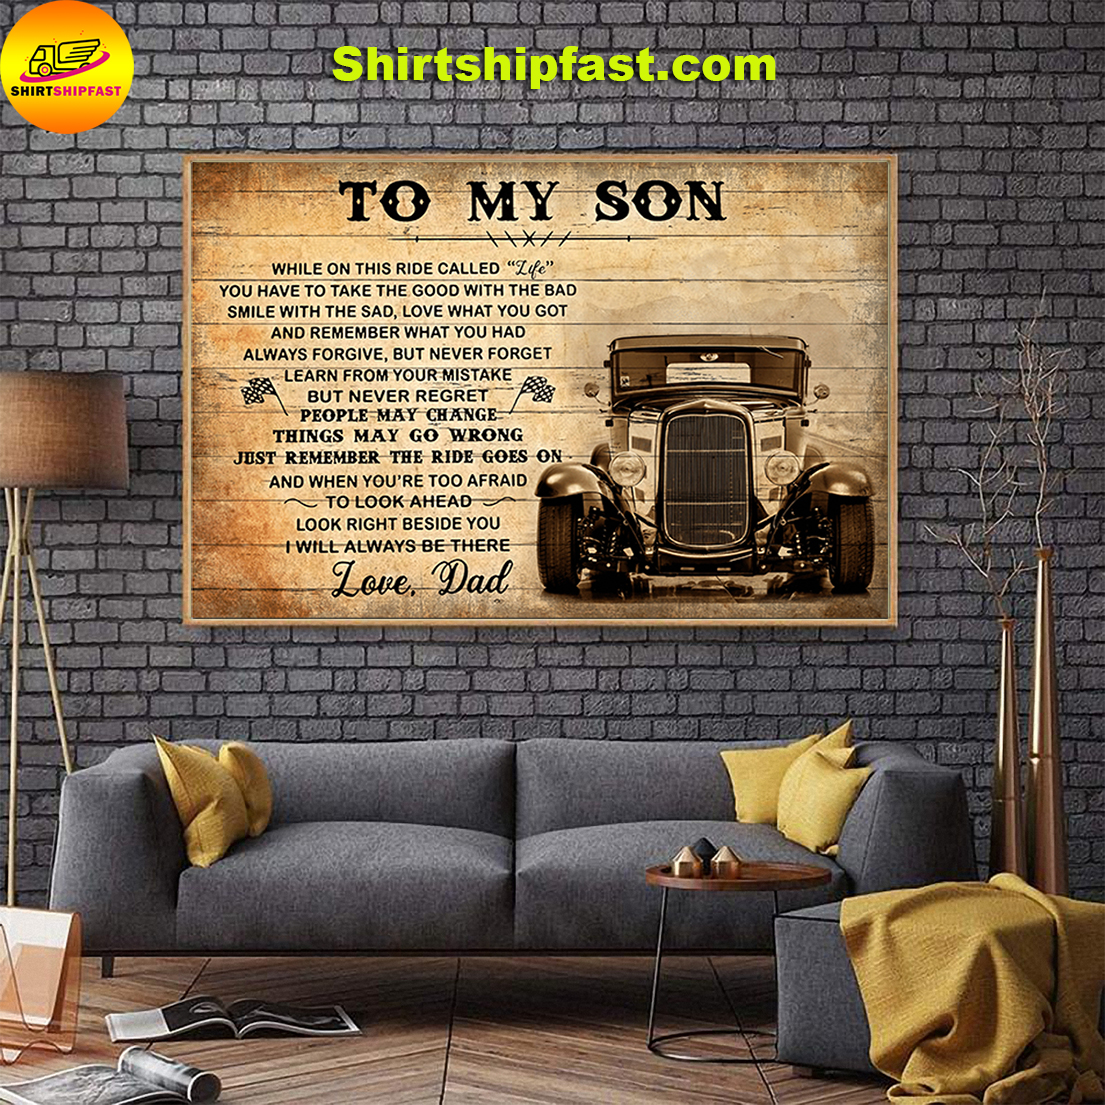 Hot rod To my son love dad canvas - Picture 1